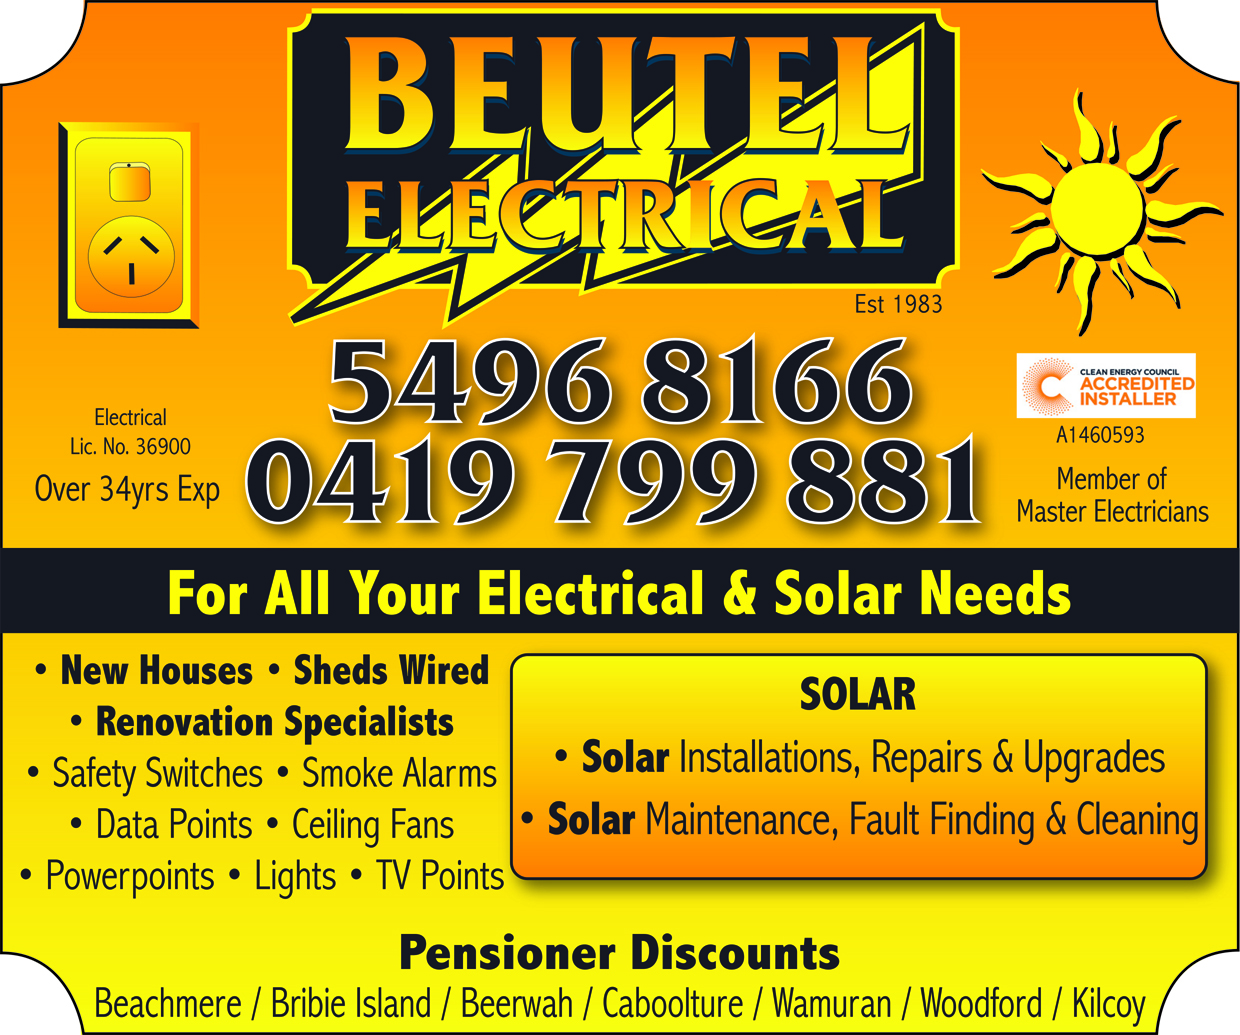 Beutel Electrical - advertisement